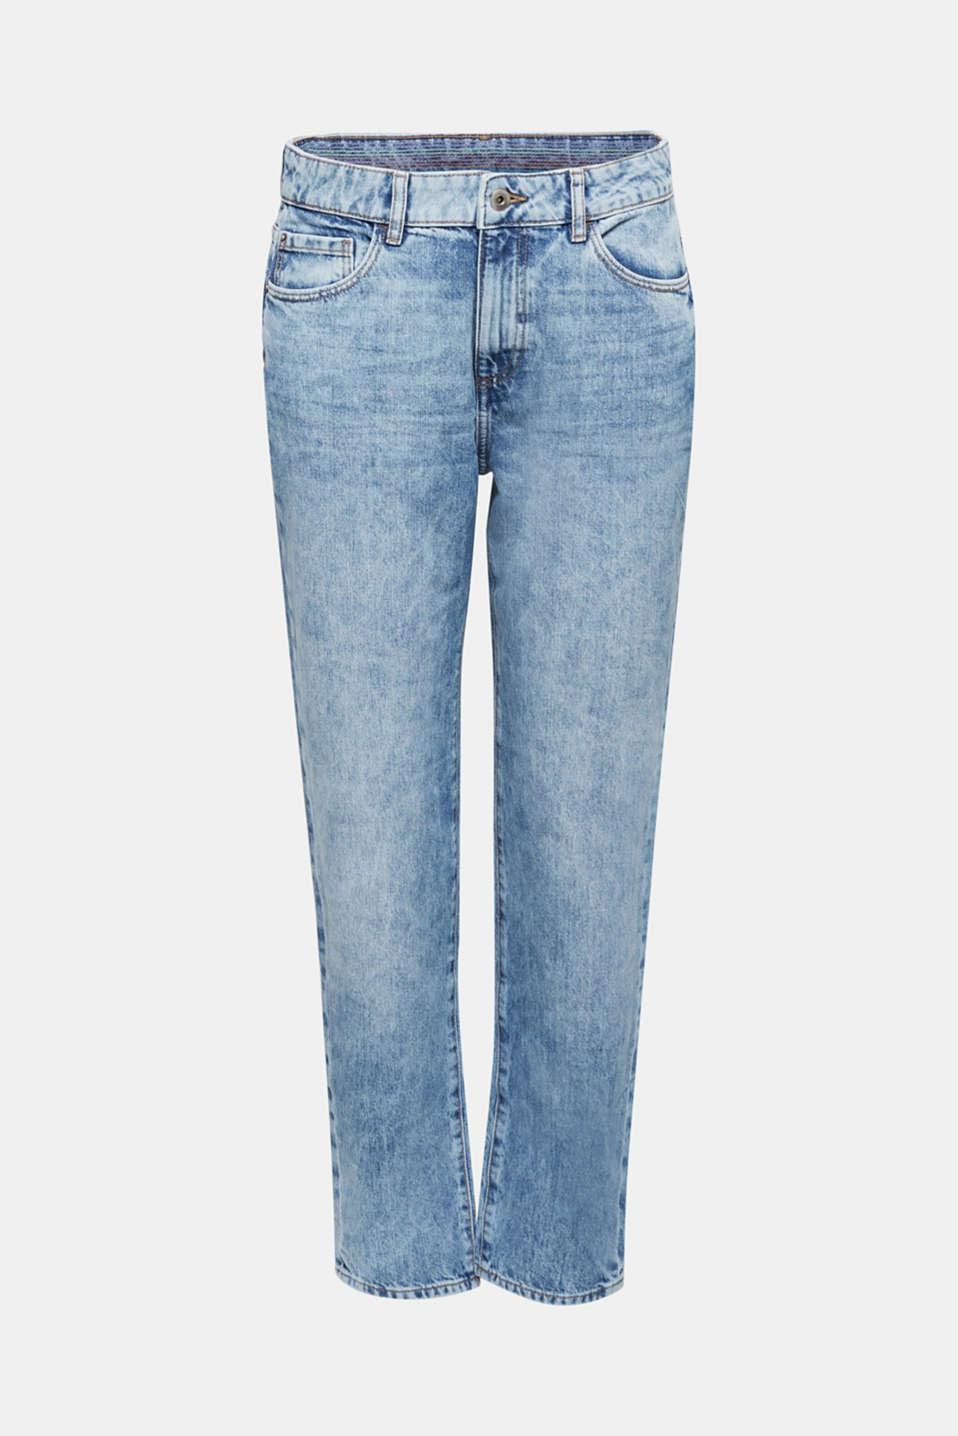 Ankle-length girlfriend jeans, 100% cotton, BLUE BLEACHED, detail image number 7